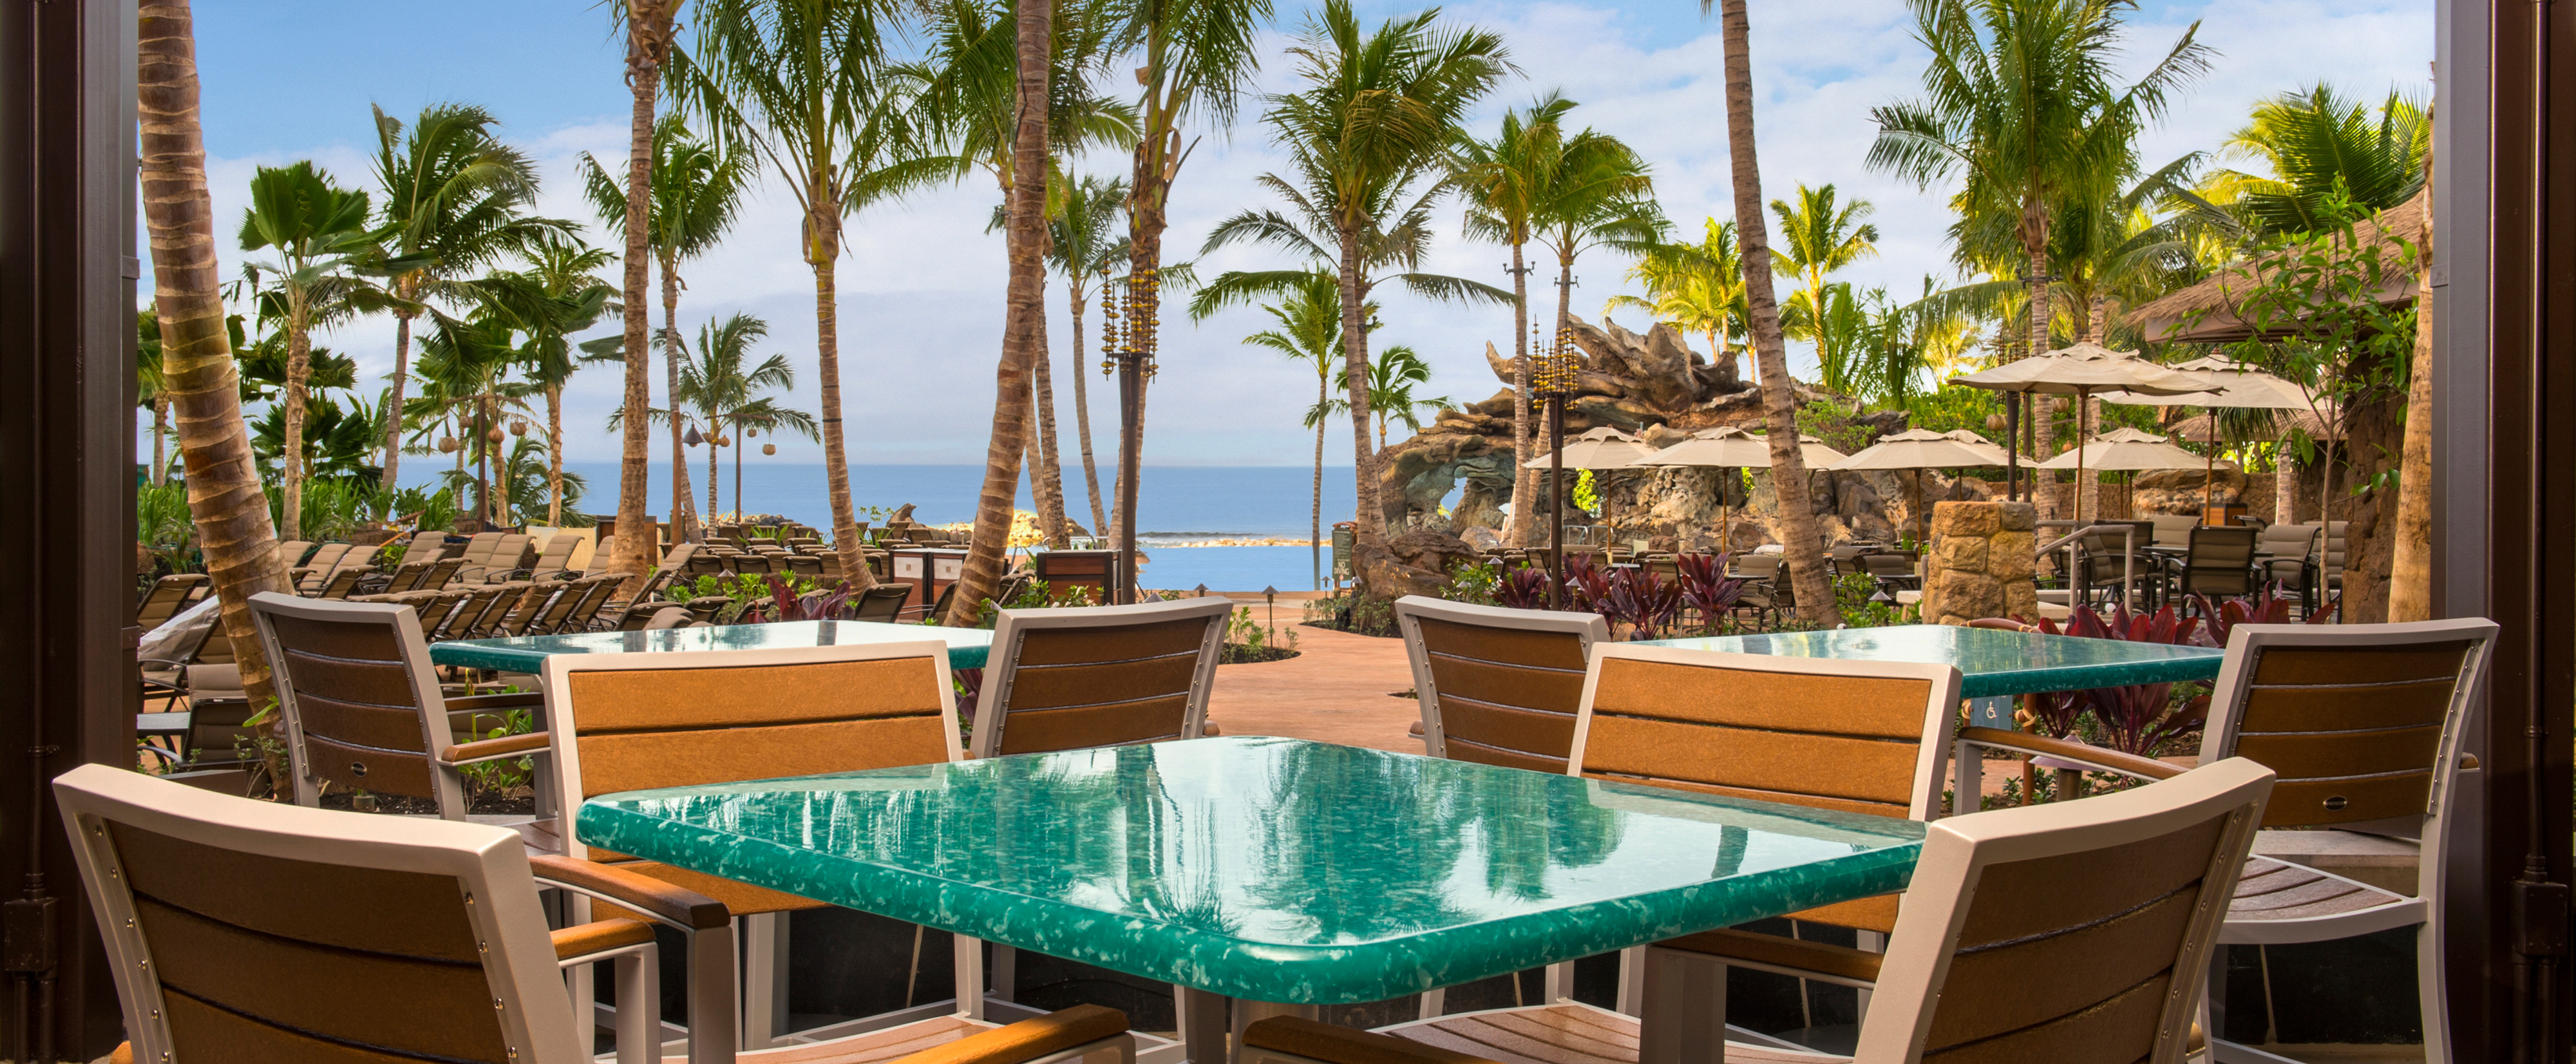 Outdoor tables on the covered patio look upon palm trees and an ocean view